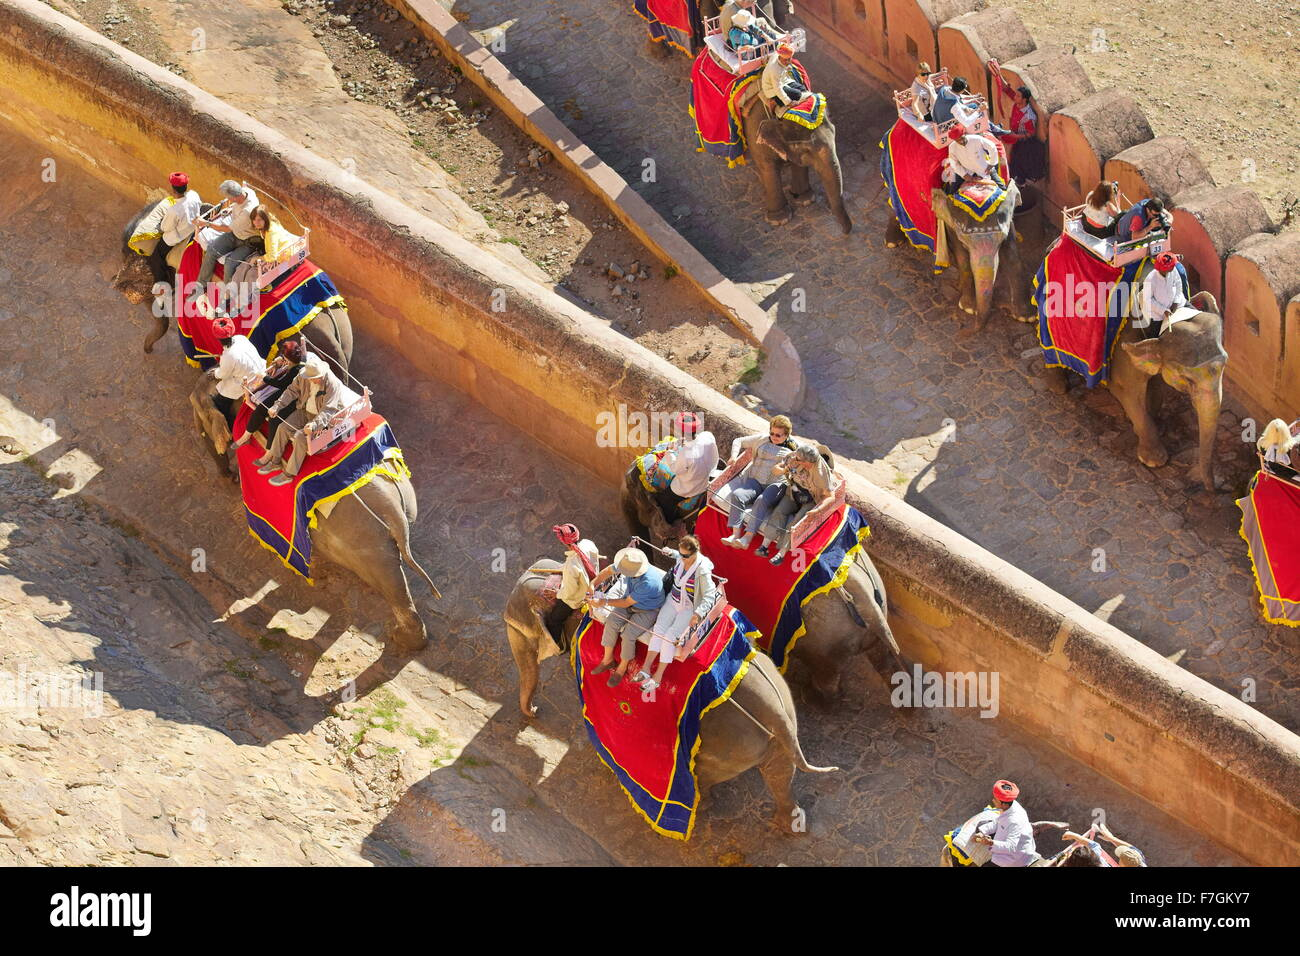 Les éléphants transportant des touristes au Fort Amber à Jaipur, Rajasthan, Inde Photo Stock